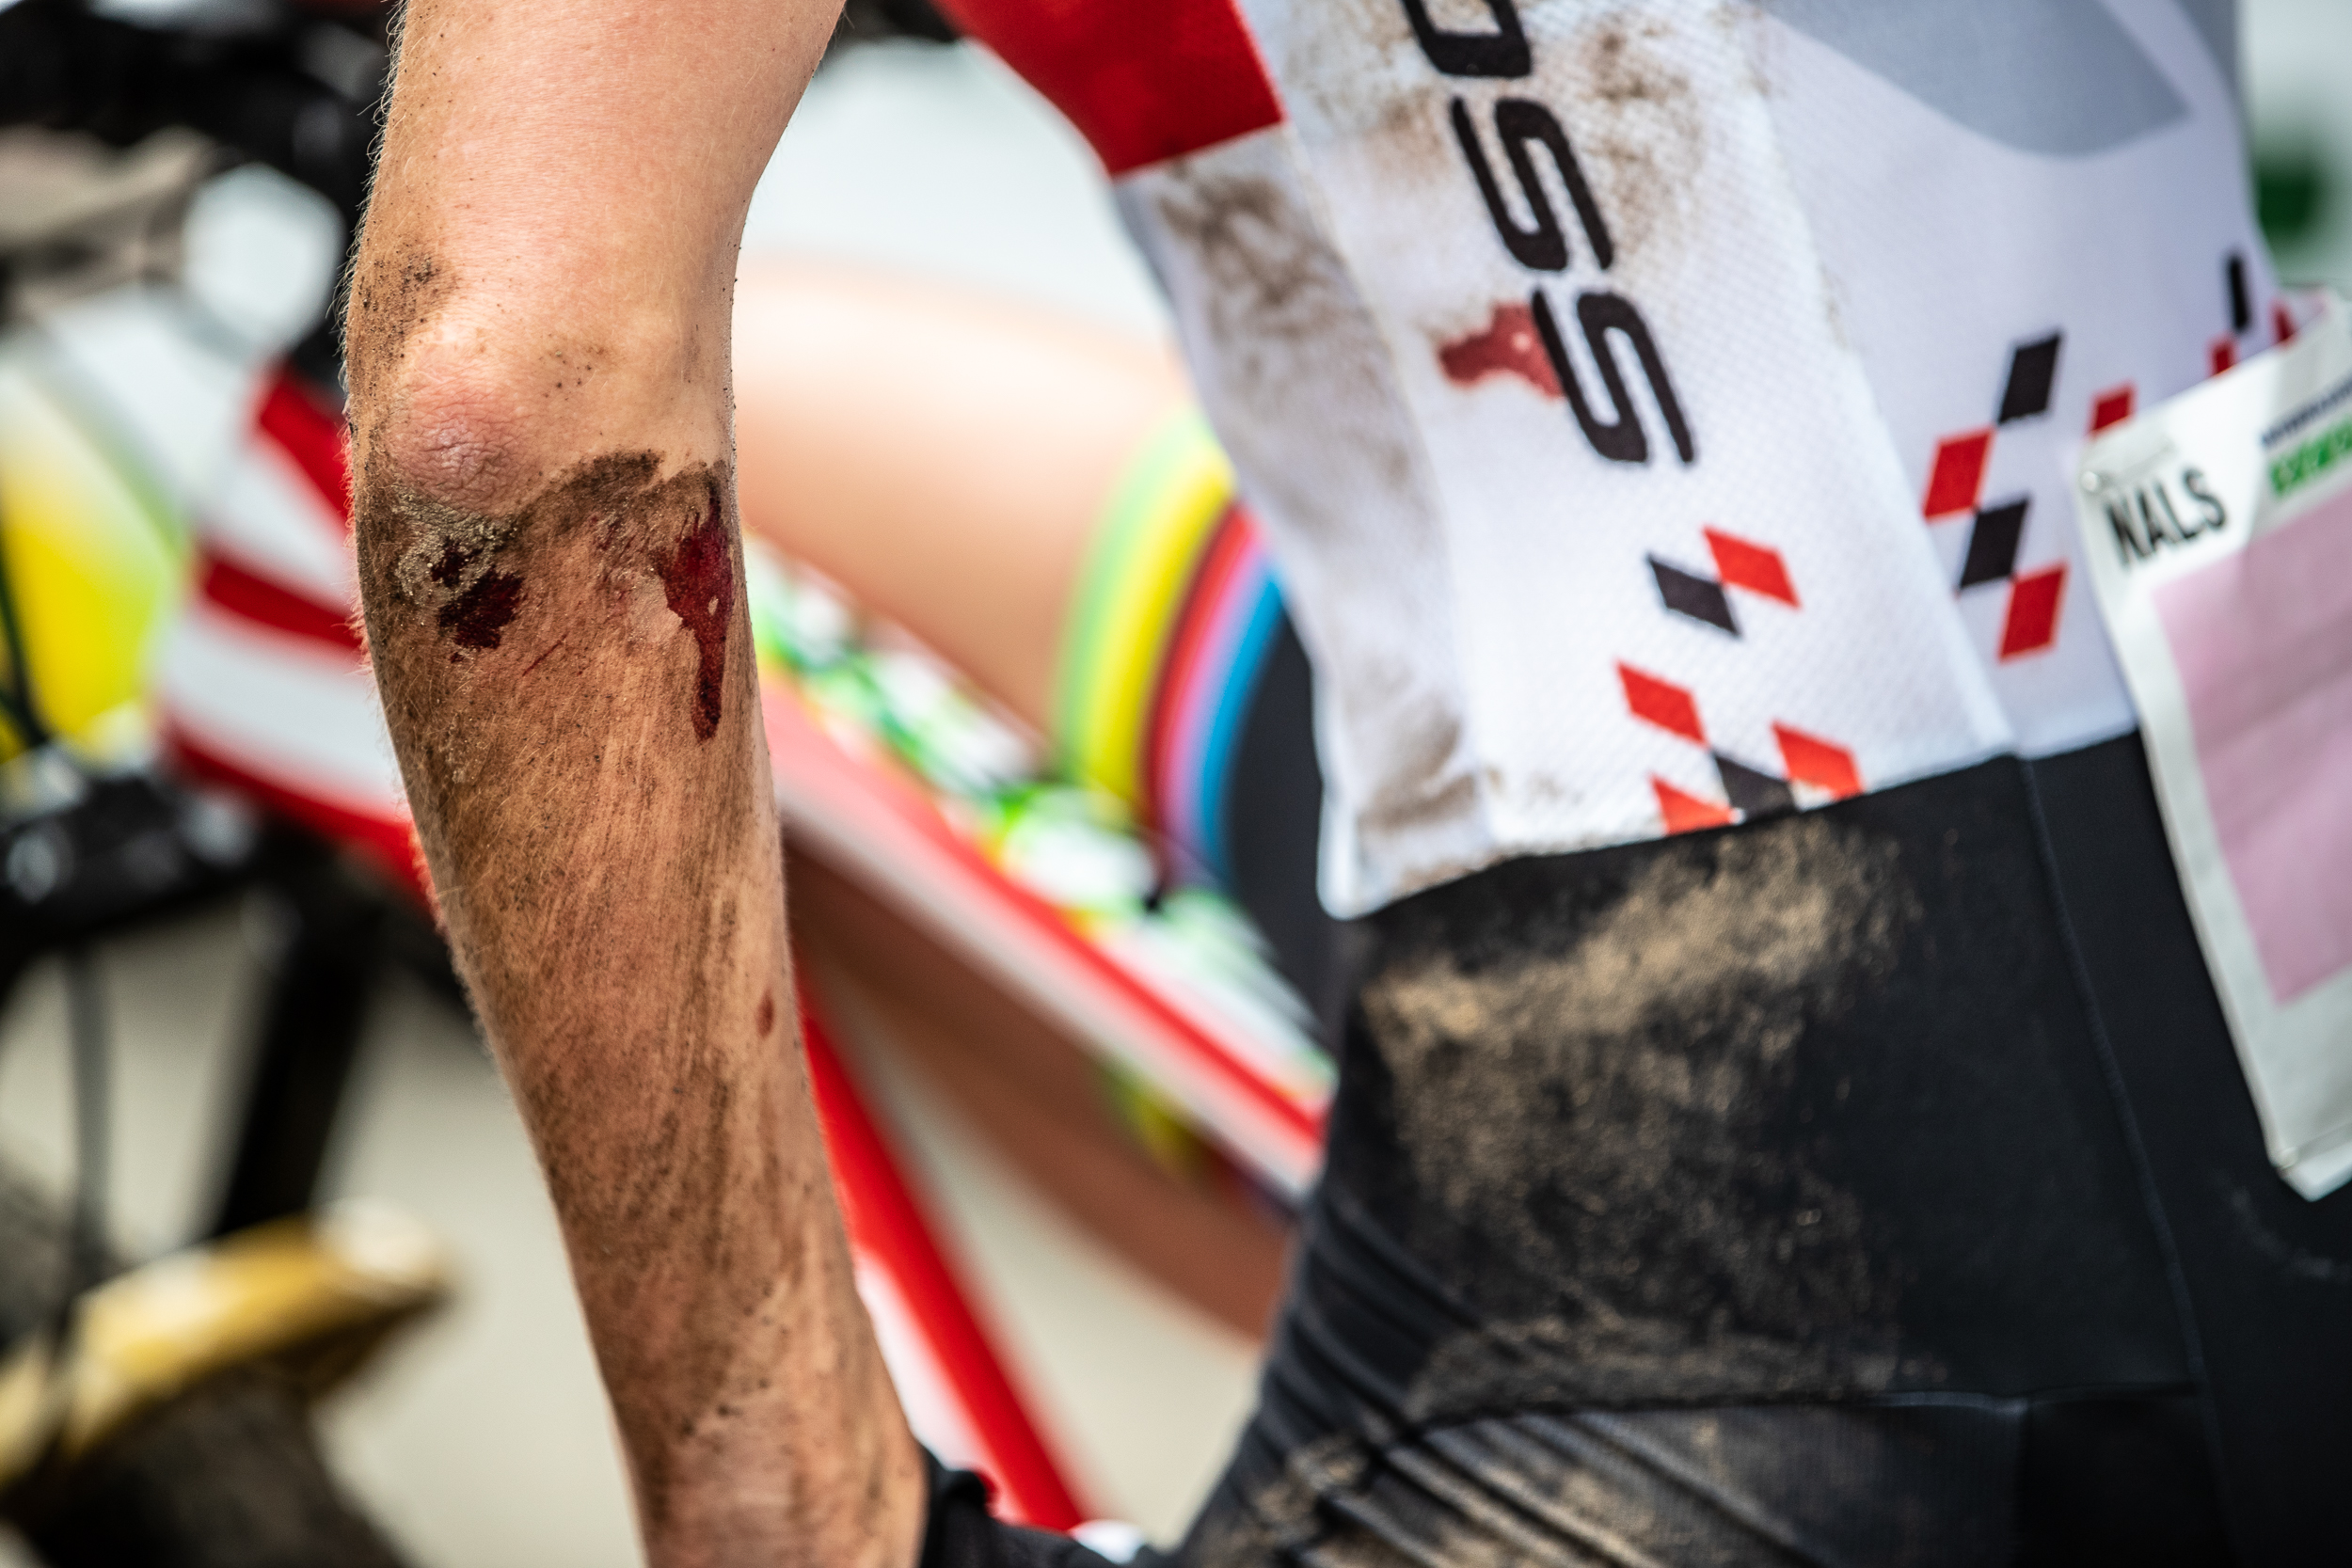 First appointment with Internazionali d'Italia in Nals. Maja włoszczowska shows the wounds after the race - Ph: Michele Mondini